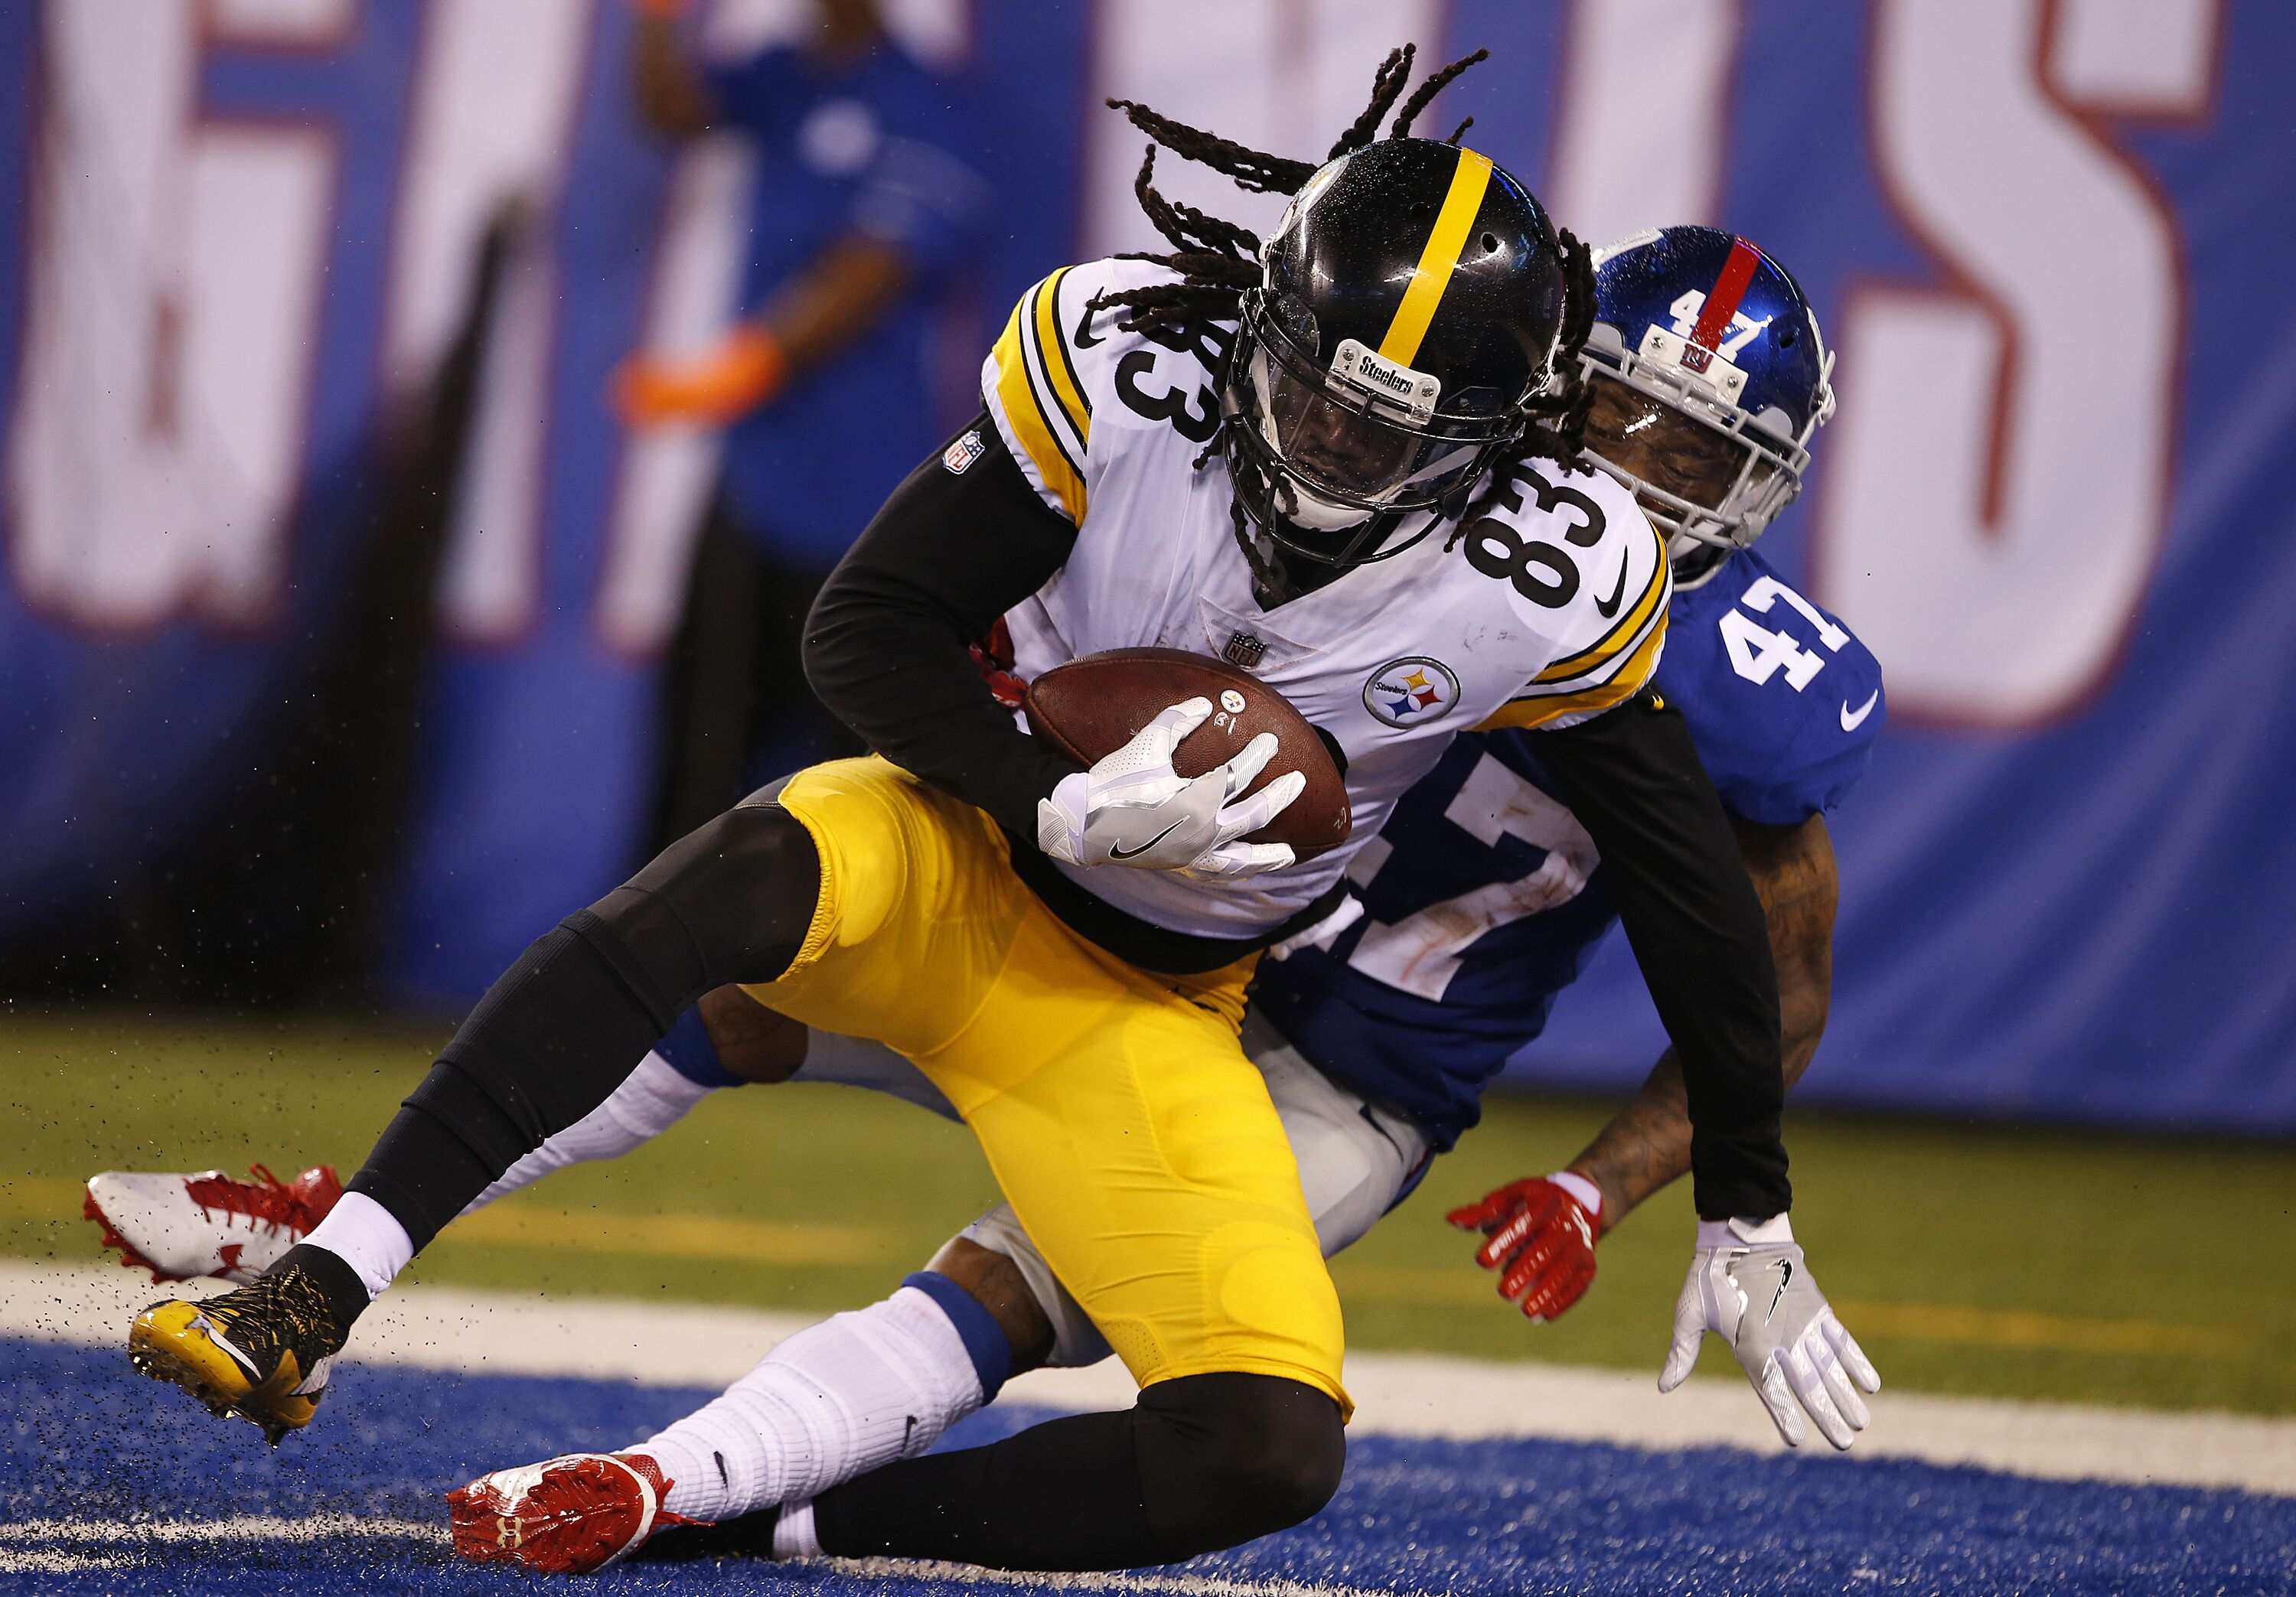 830570170-pittsburgh-steelers-v-new-york-giants.jpg